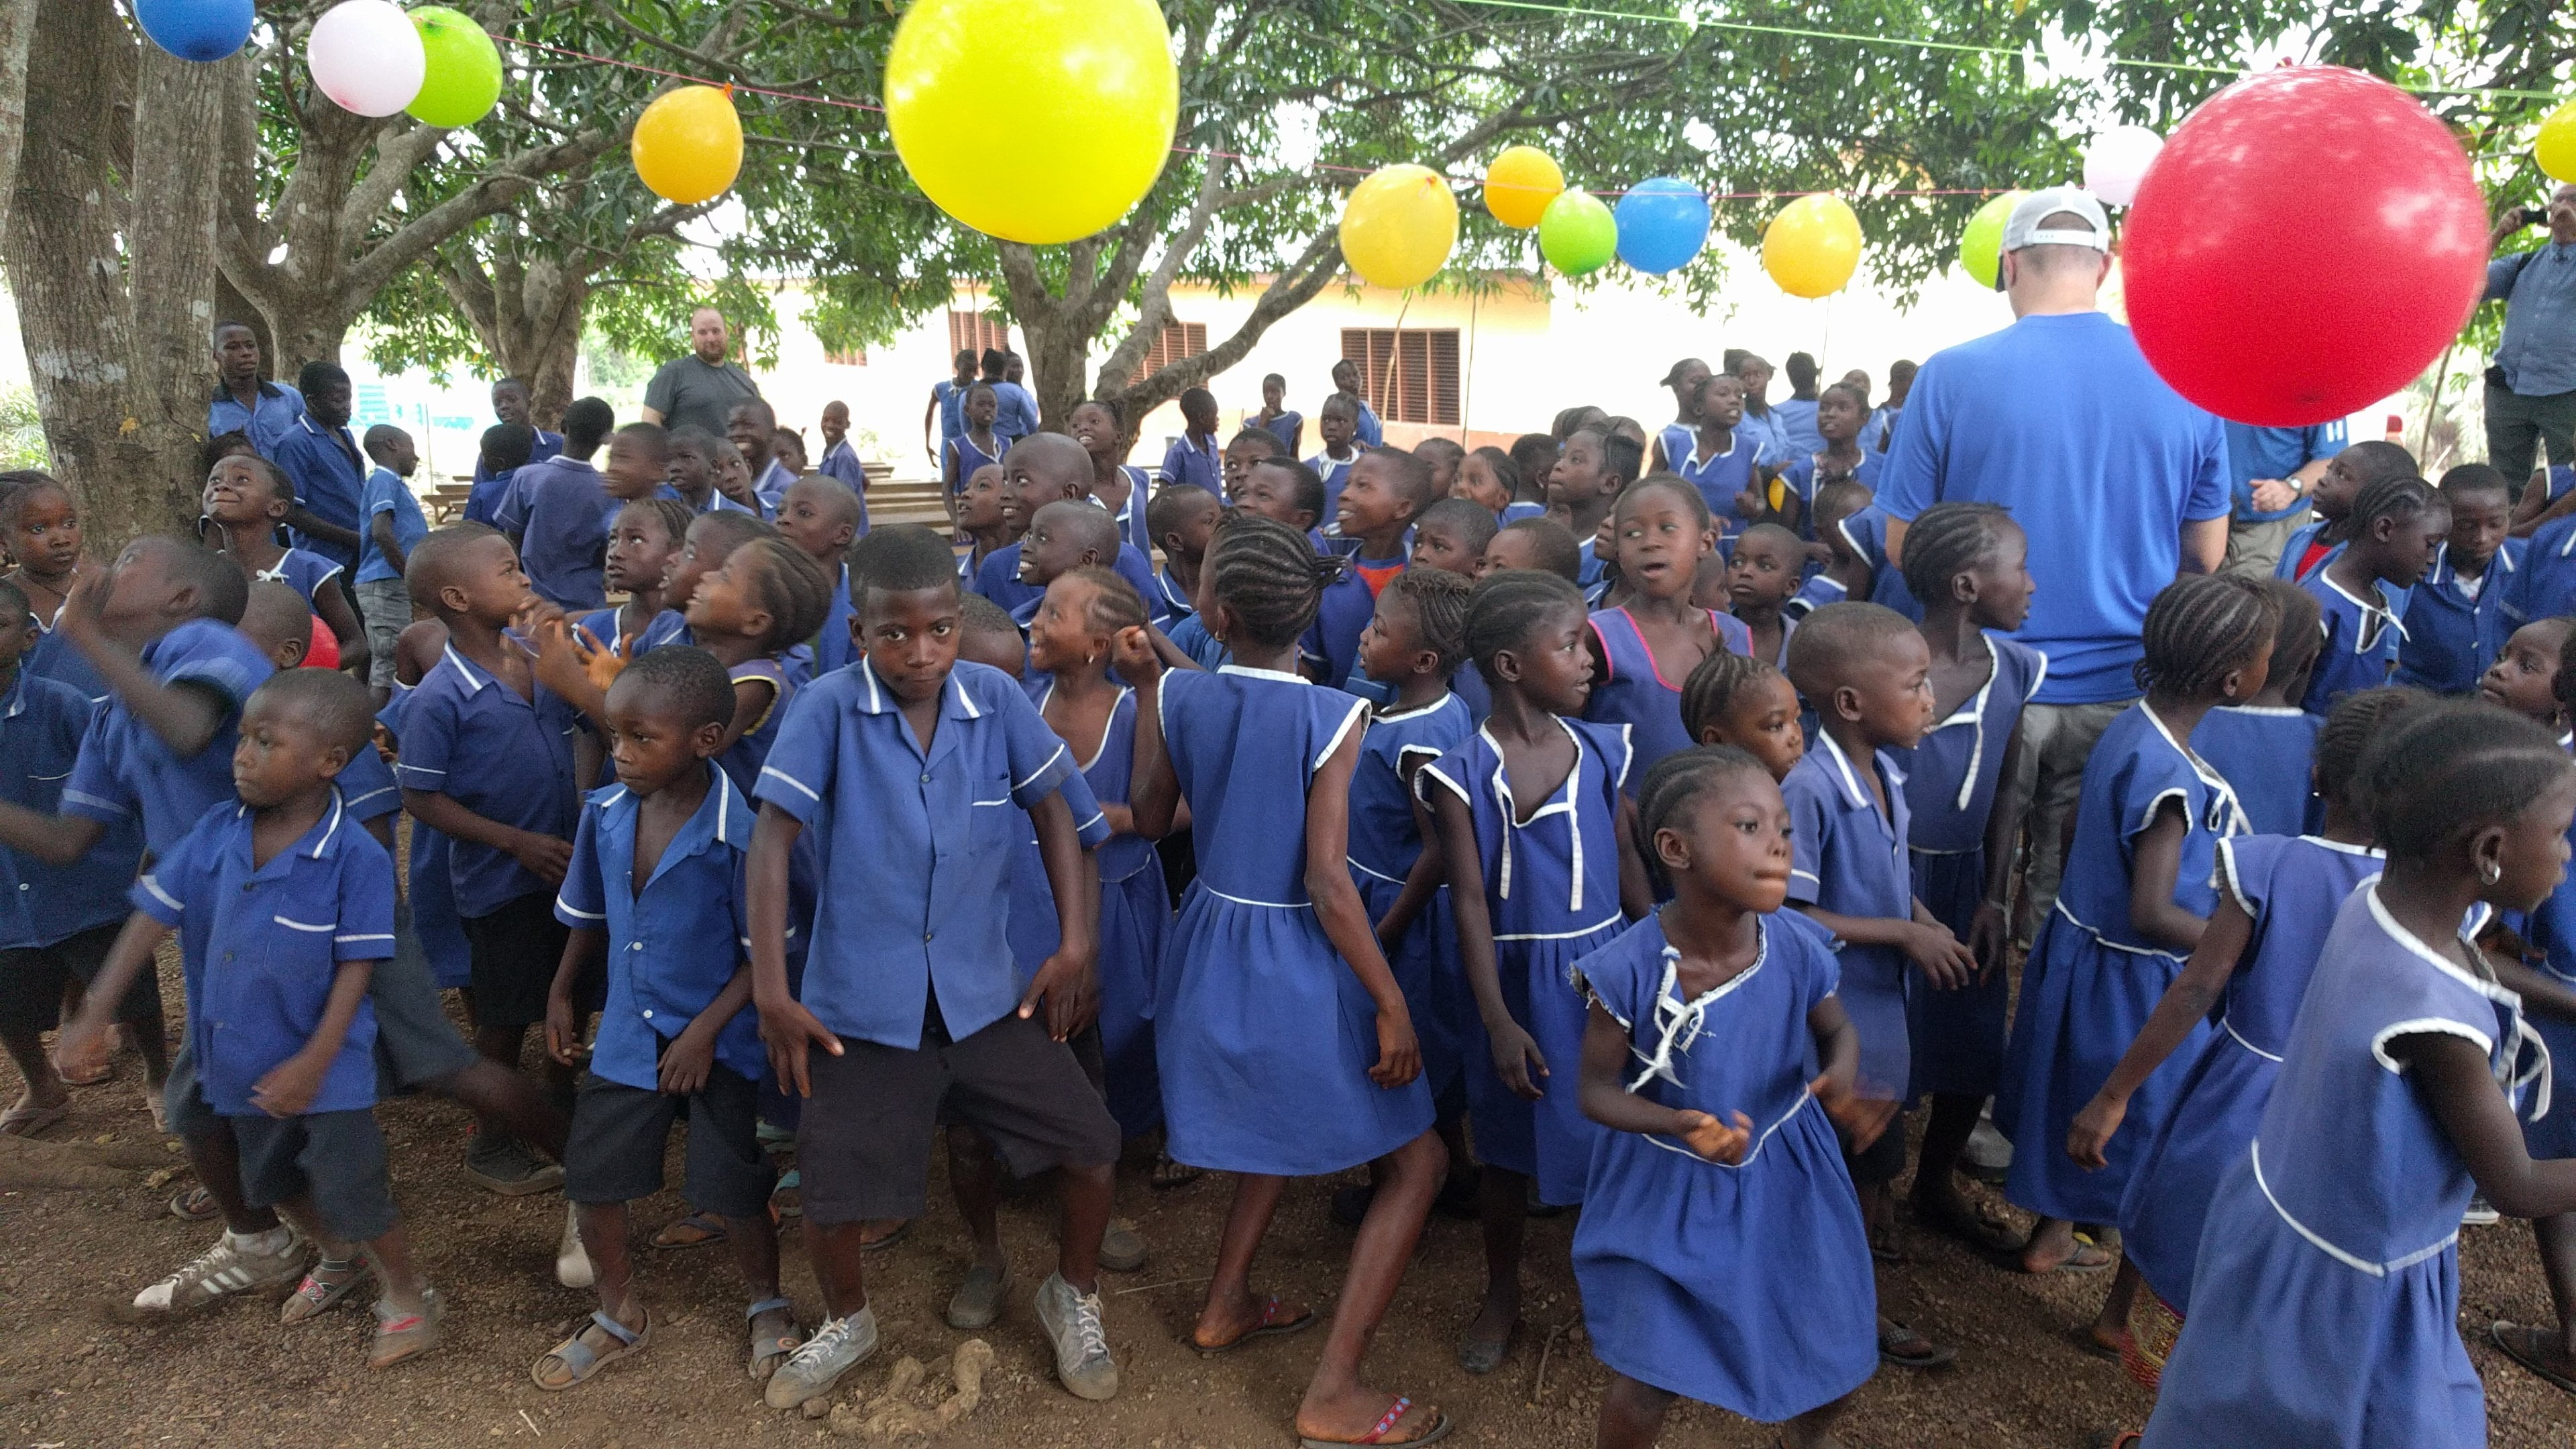 Day Camp in Kathirie, Celebration And Sharing The Love